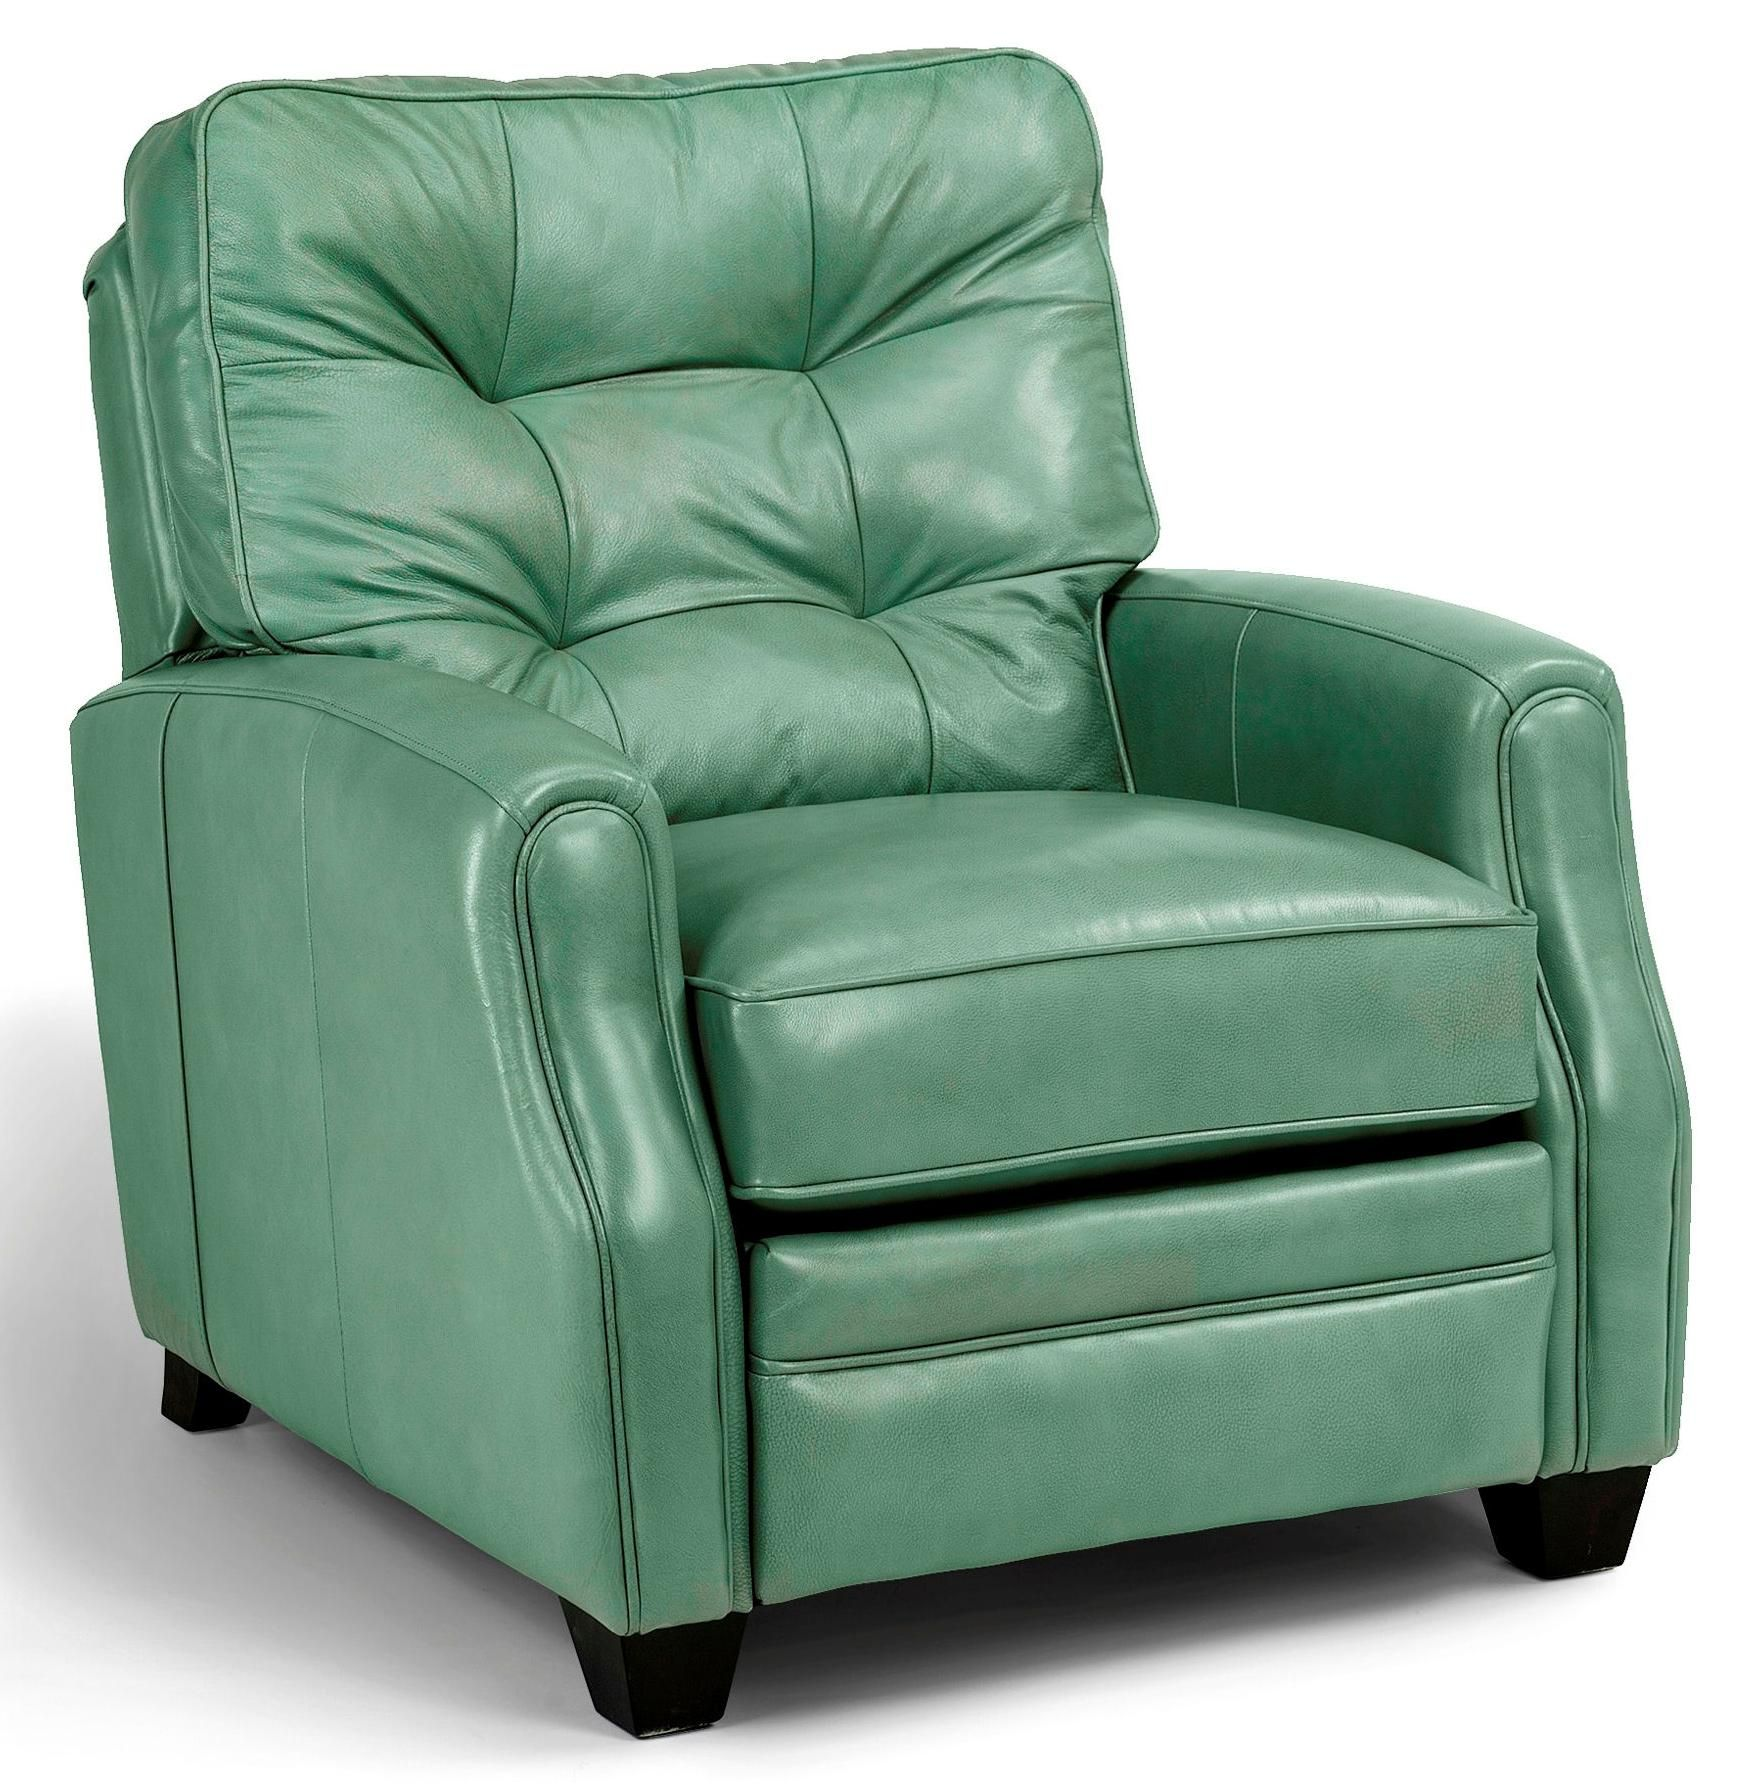 Latitudes  Flamenco  660344646 Recliner by Flexsteel  Found this todayits so wonderful